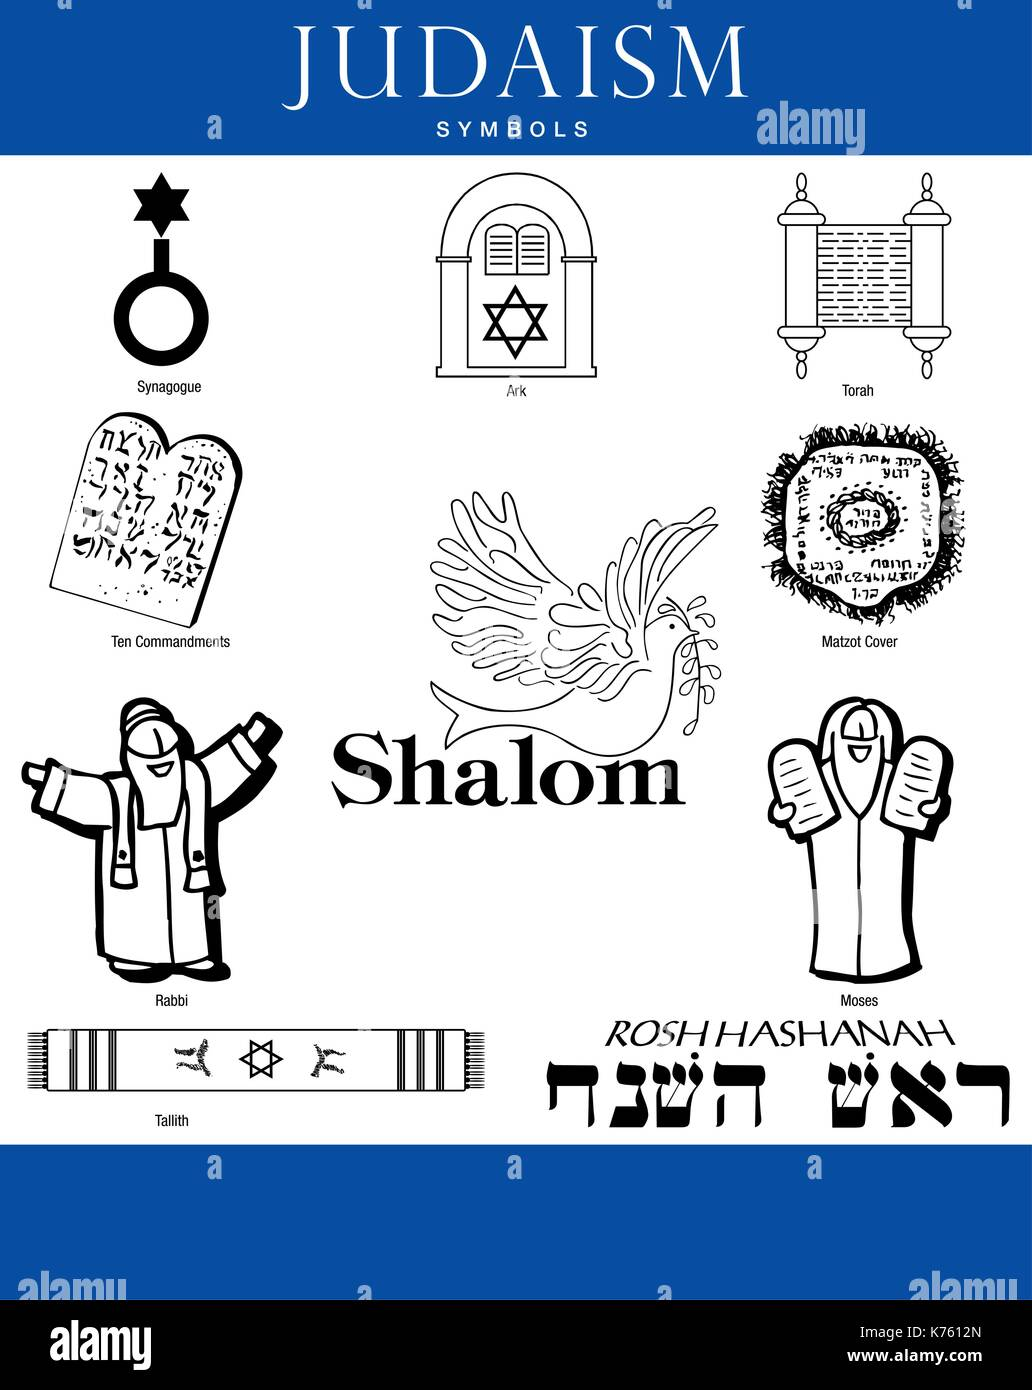 Rabbi with torah scroll stock photos rabbi with torah scroll set of judaism symbols on white background with blue bars vector image stock image biocorpaavc Gallery